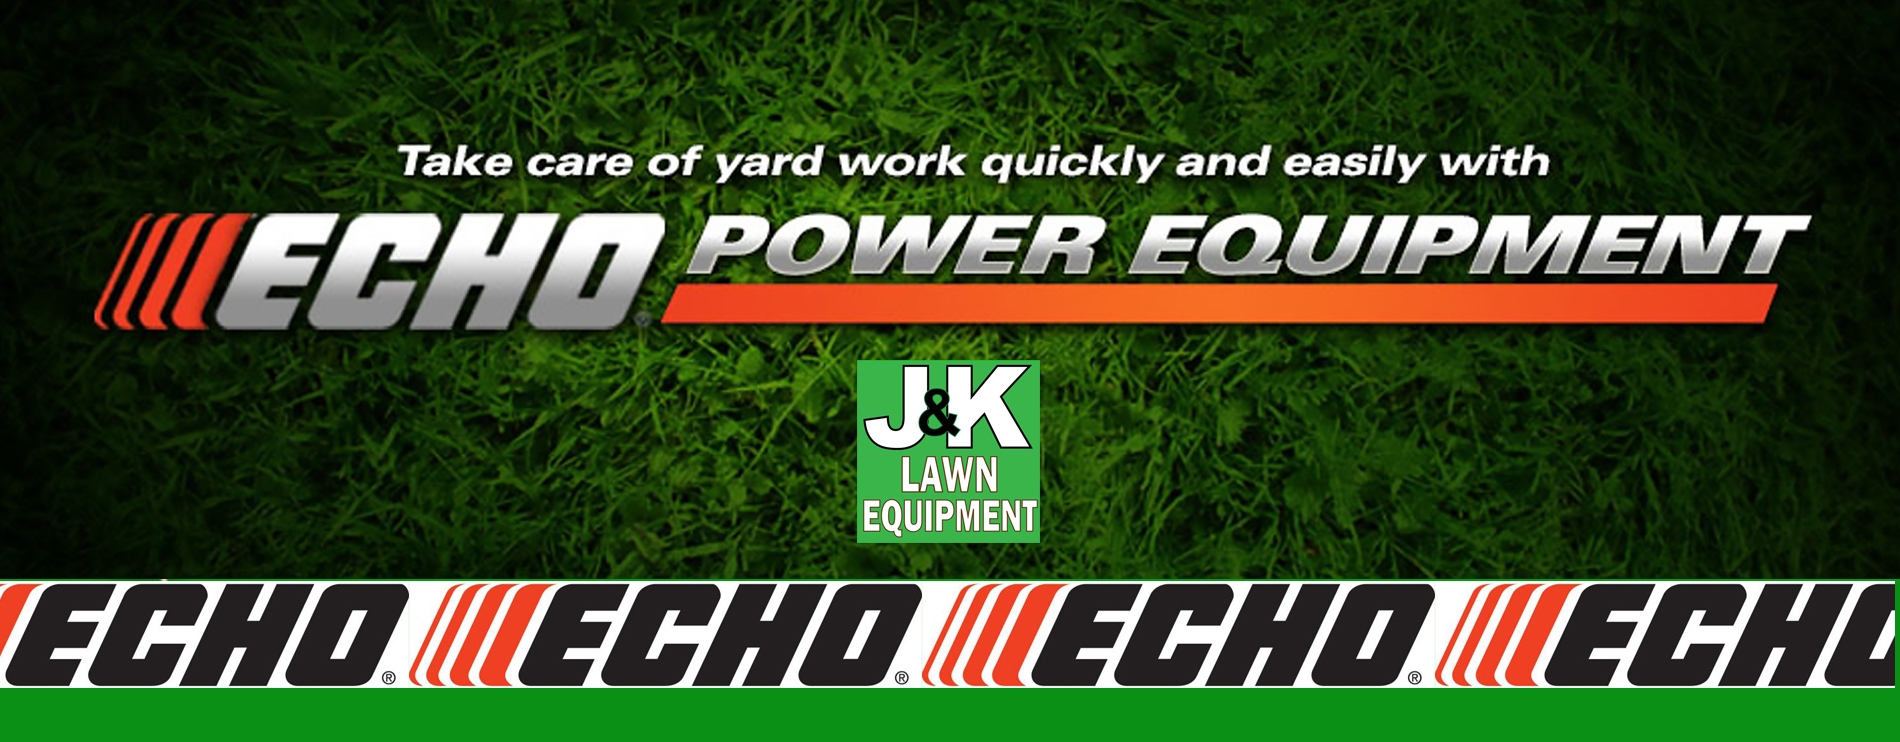 Echo Lawn Equipment, J and K Lawn Equipment